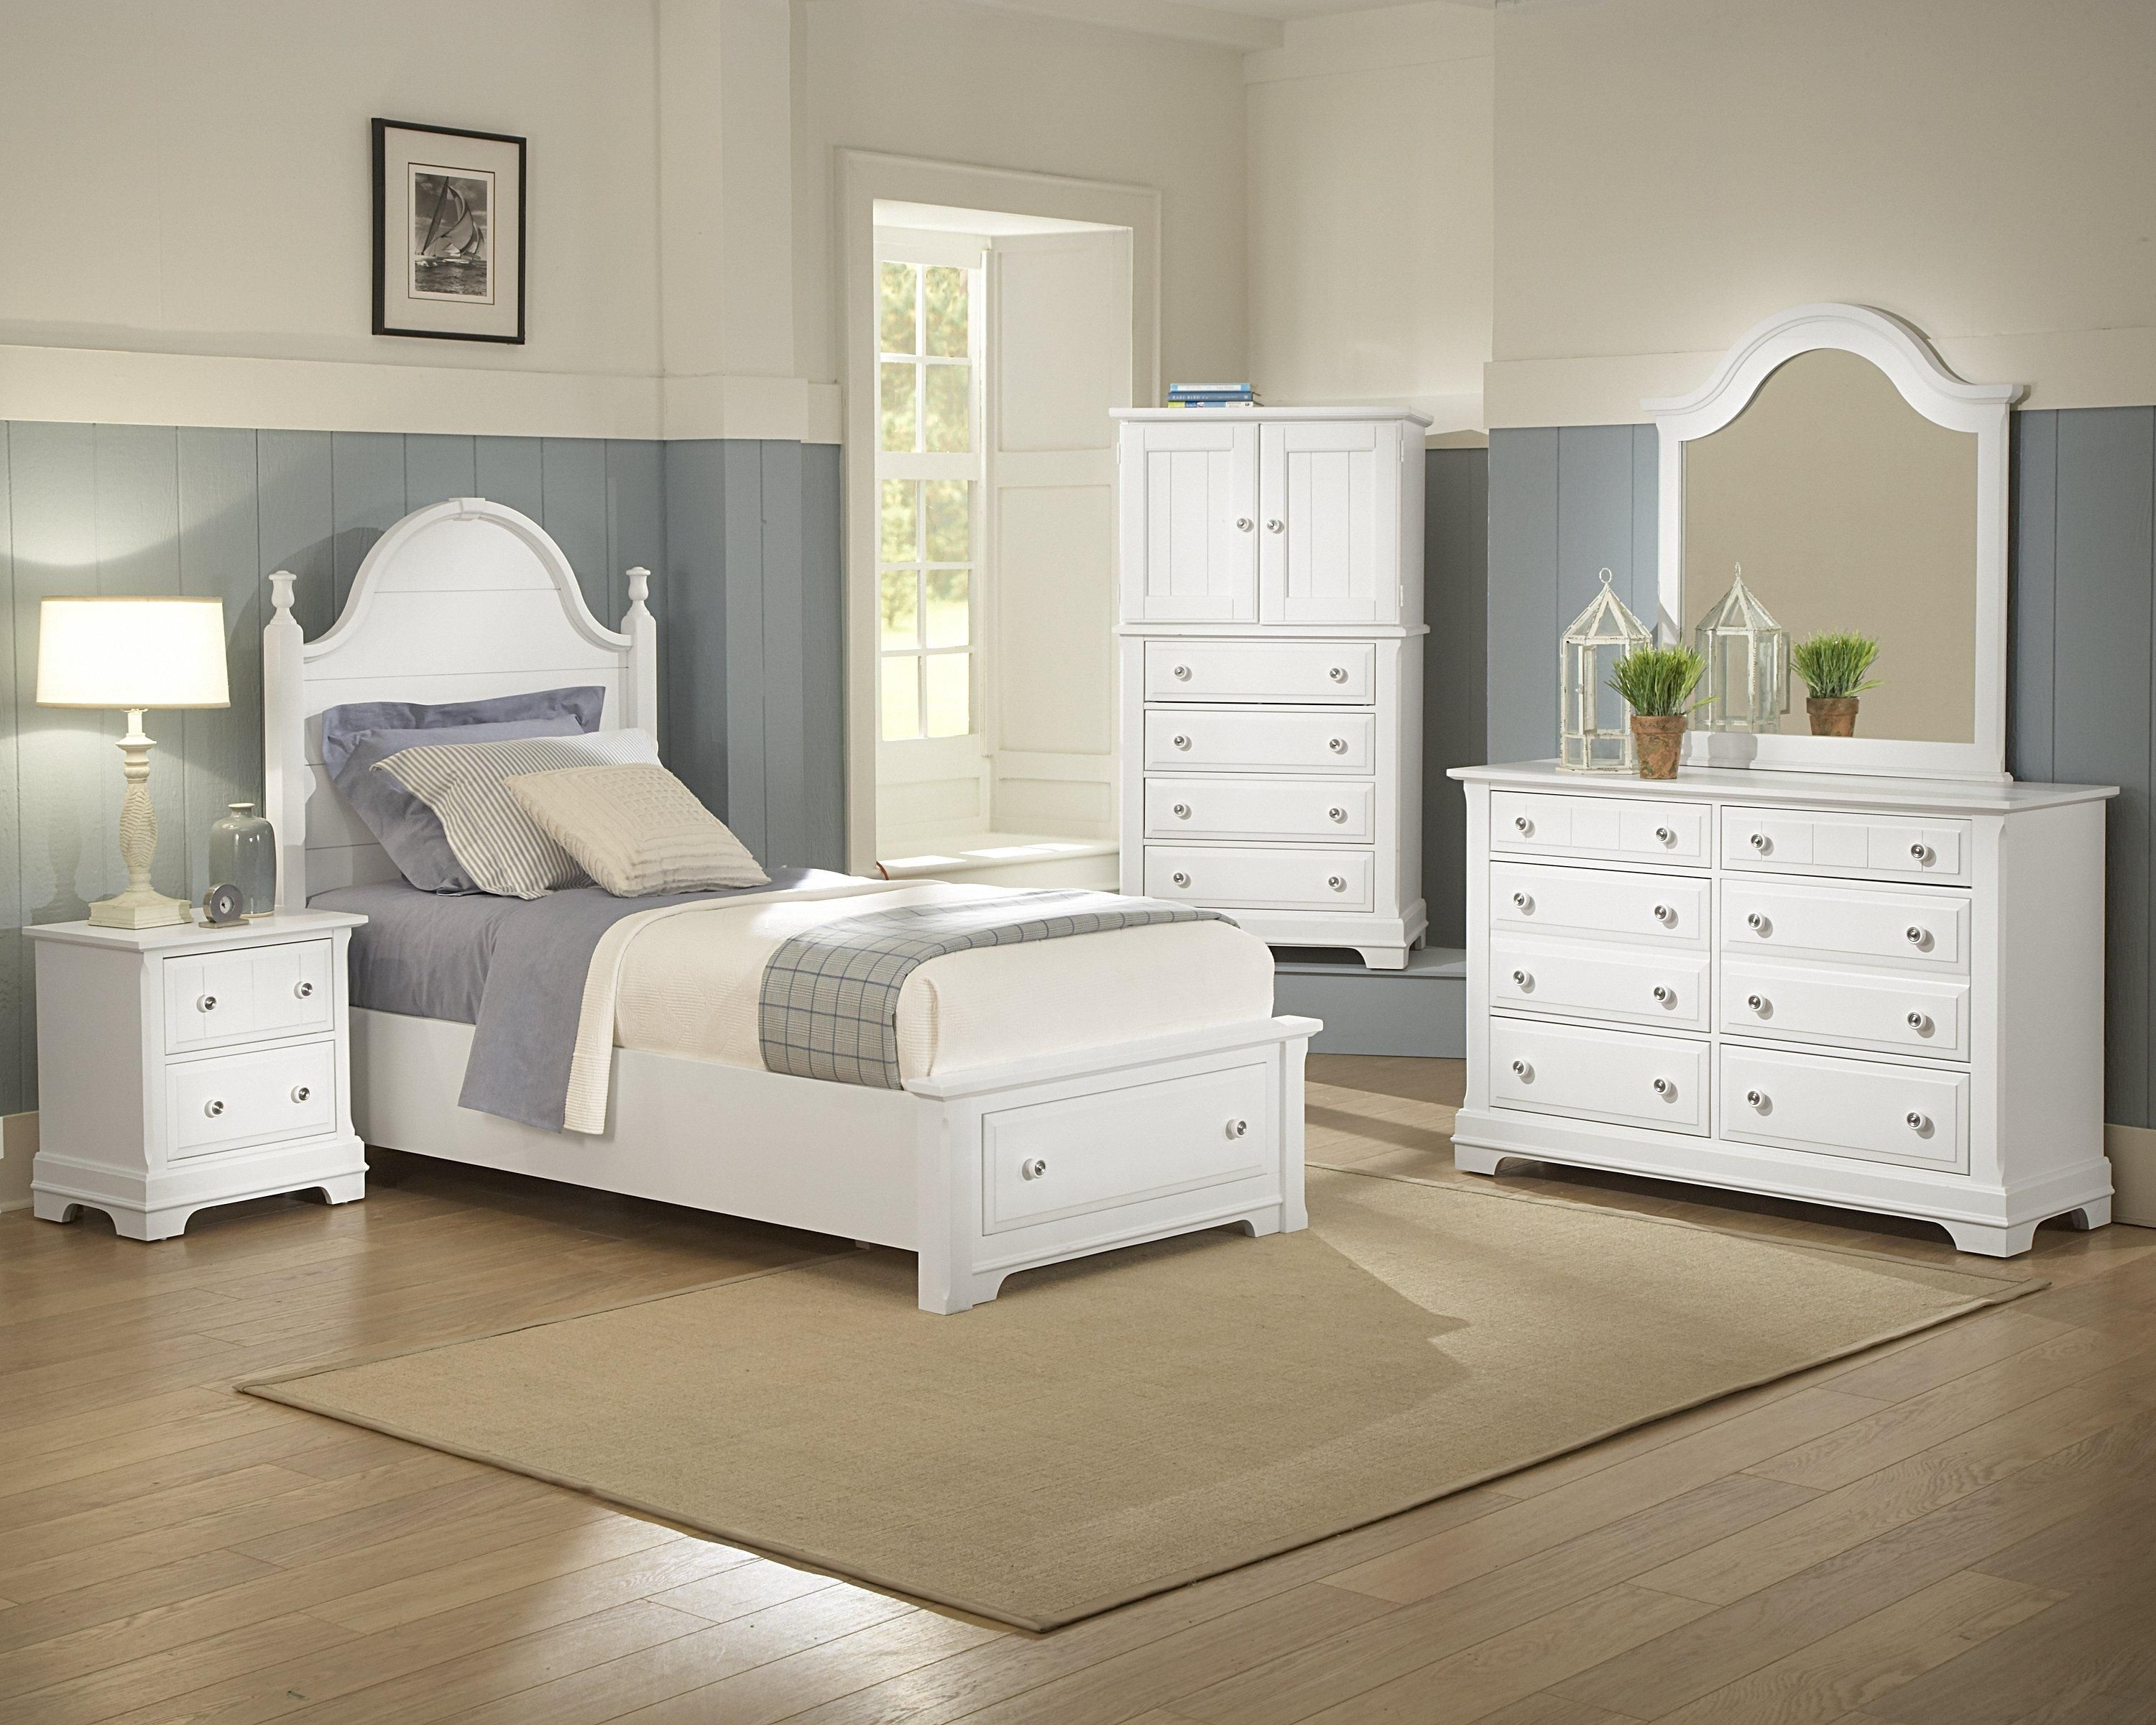 Vaughn Bassett Furniture: Cottage Collection featuring panel ...